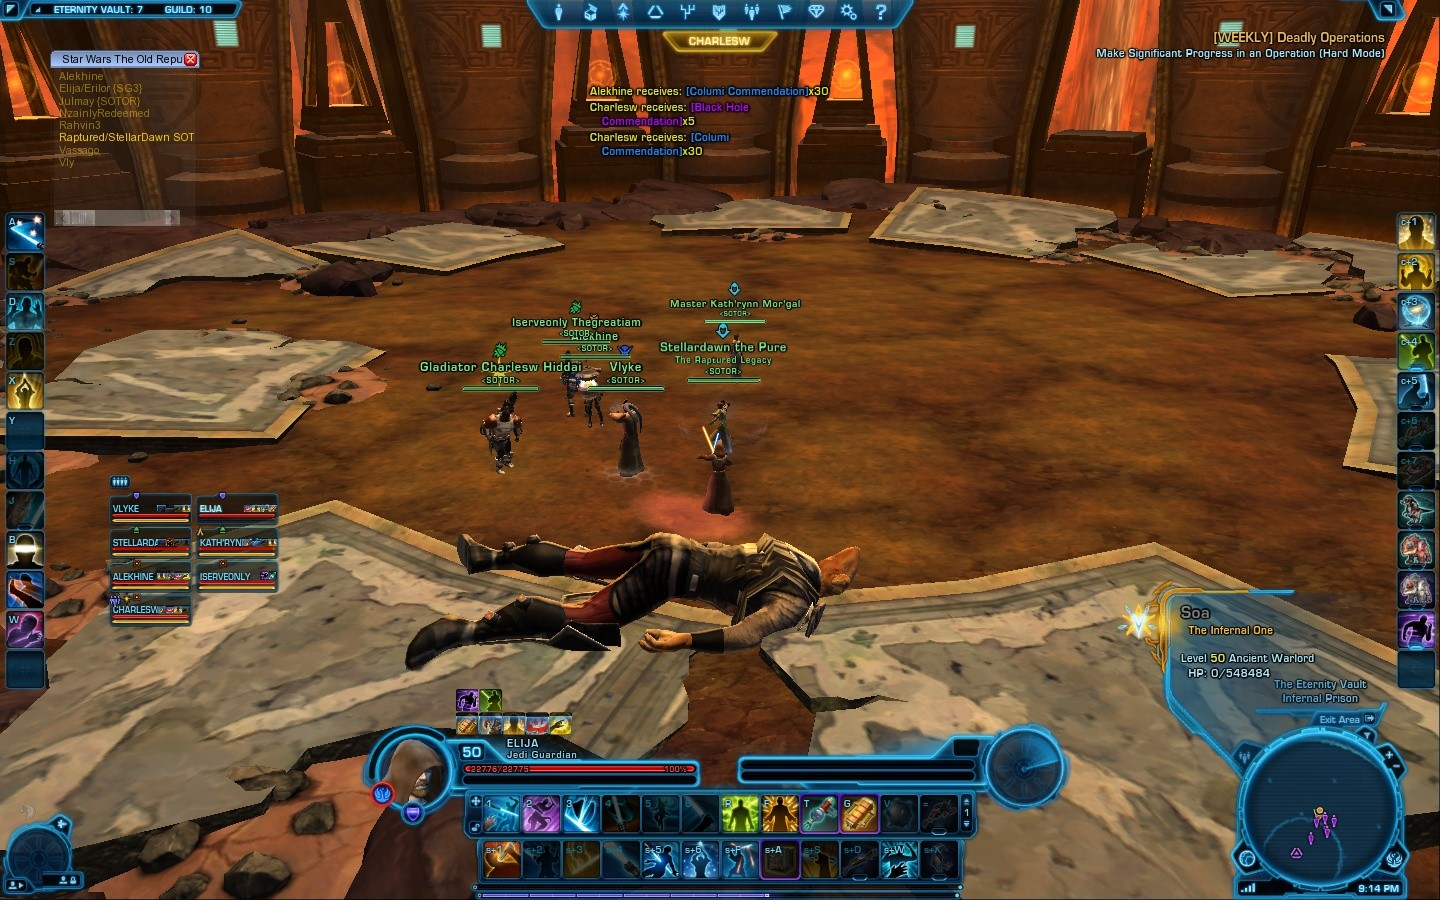 Star Wars: The Old Republic - Us-1, Soa-0. WINNERS!